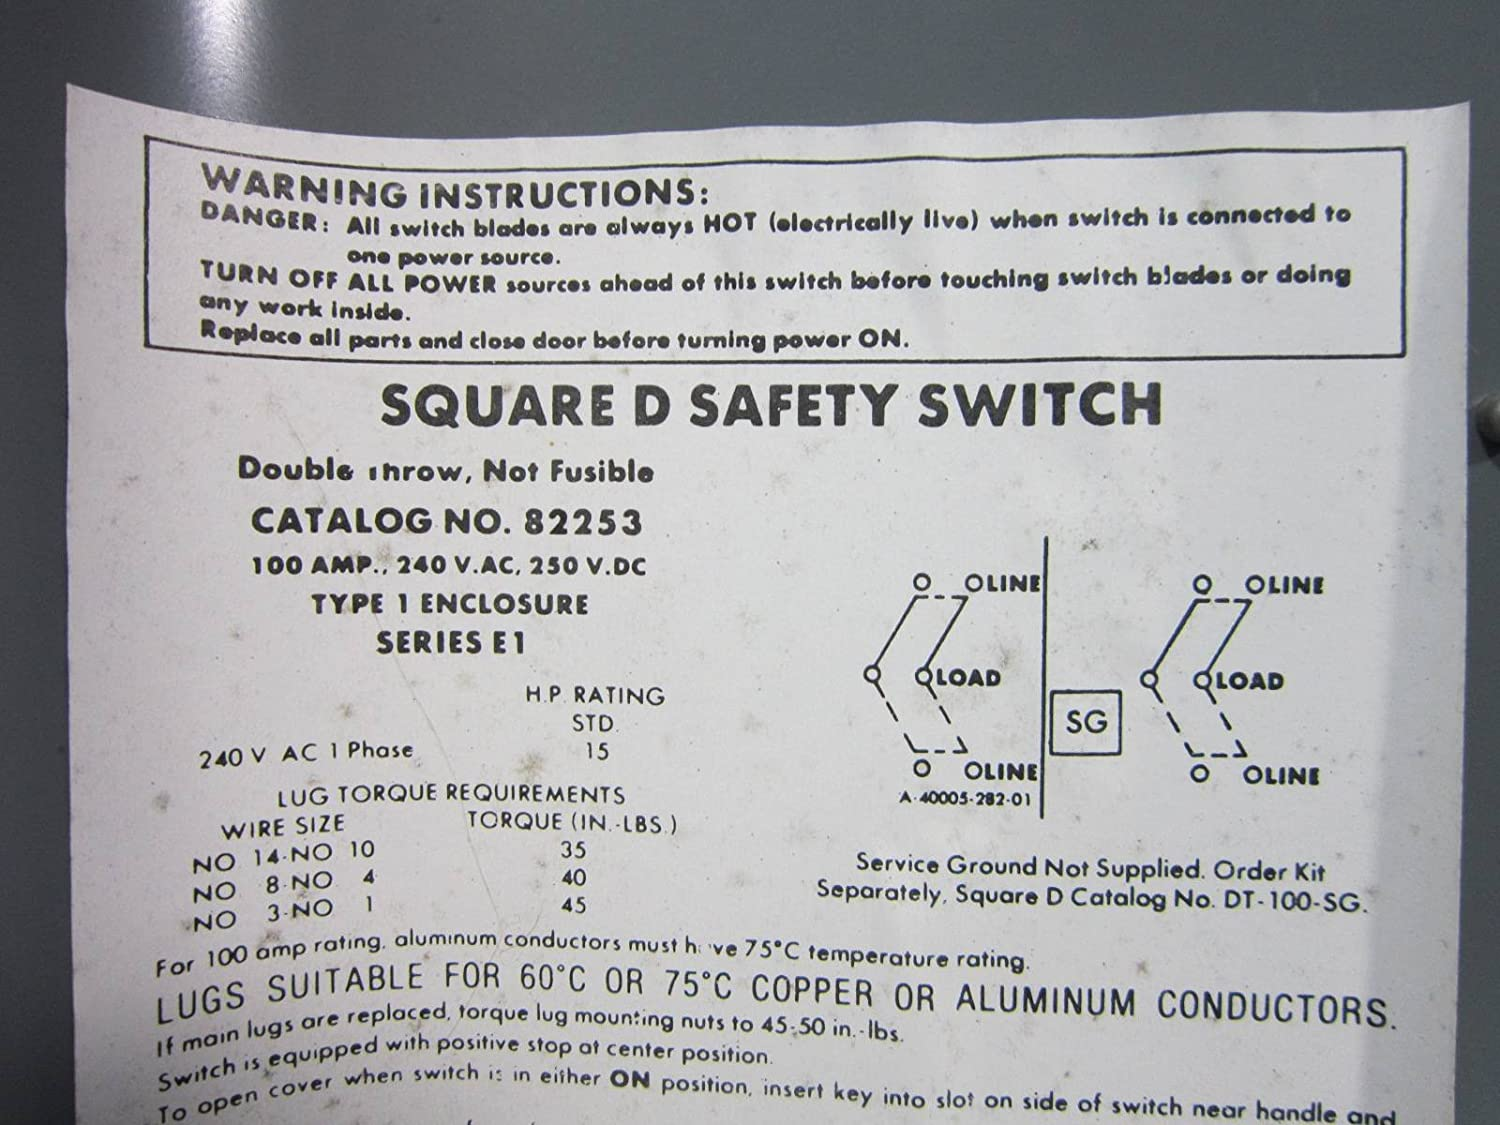 Square D 82253 Double Throw Safety Switch 100 Amp 240V Manual ...